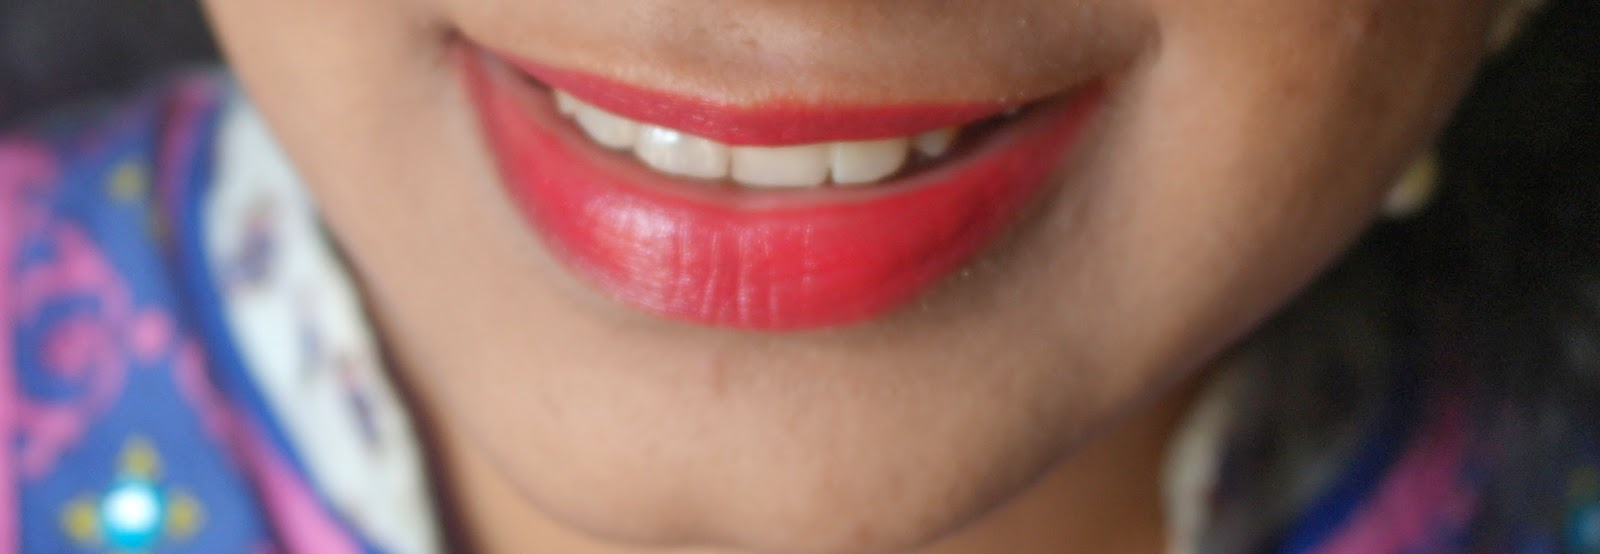 Revlon super lustrous lipstick pigmentation-staying power